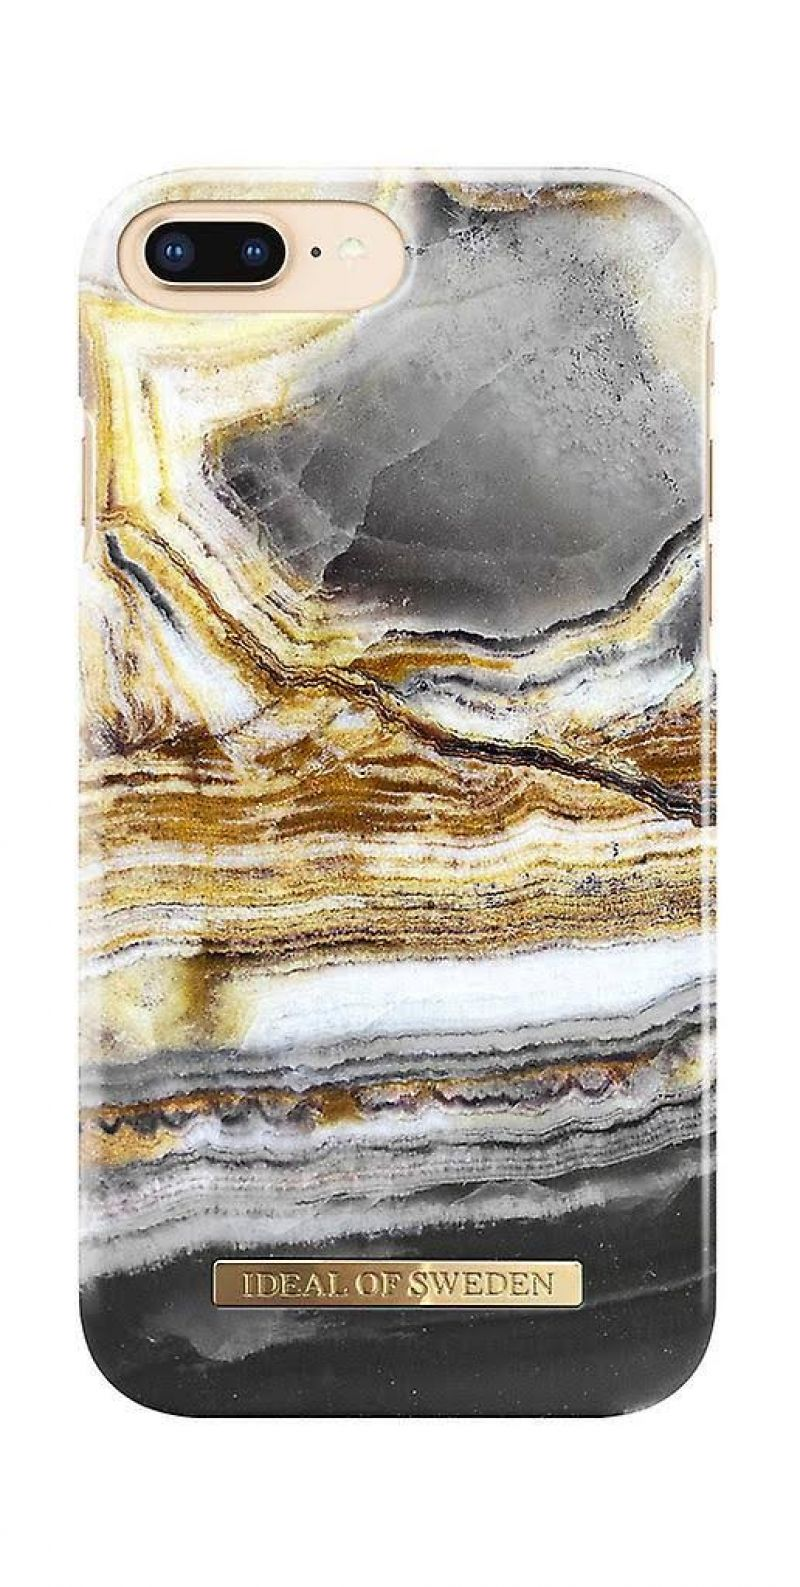 iDeal of Sweden Smartphone Tasjes & Hoesjes Outer Space Agate - IPHONE 8/7/6/6S PLUS - IDFCAW18-I7P-99